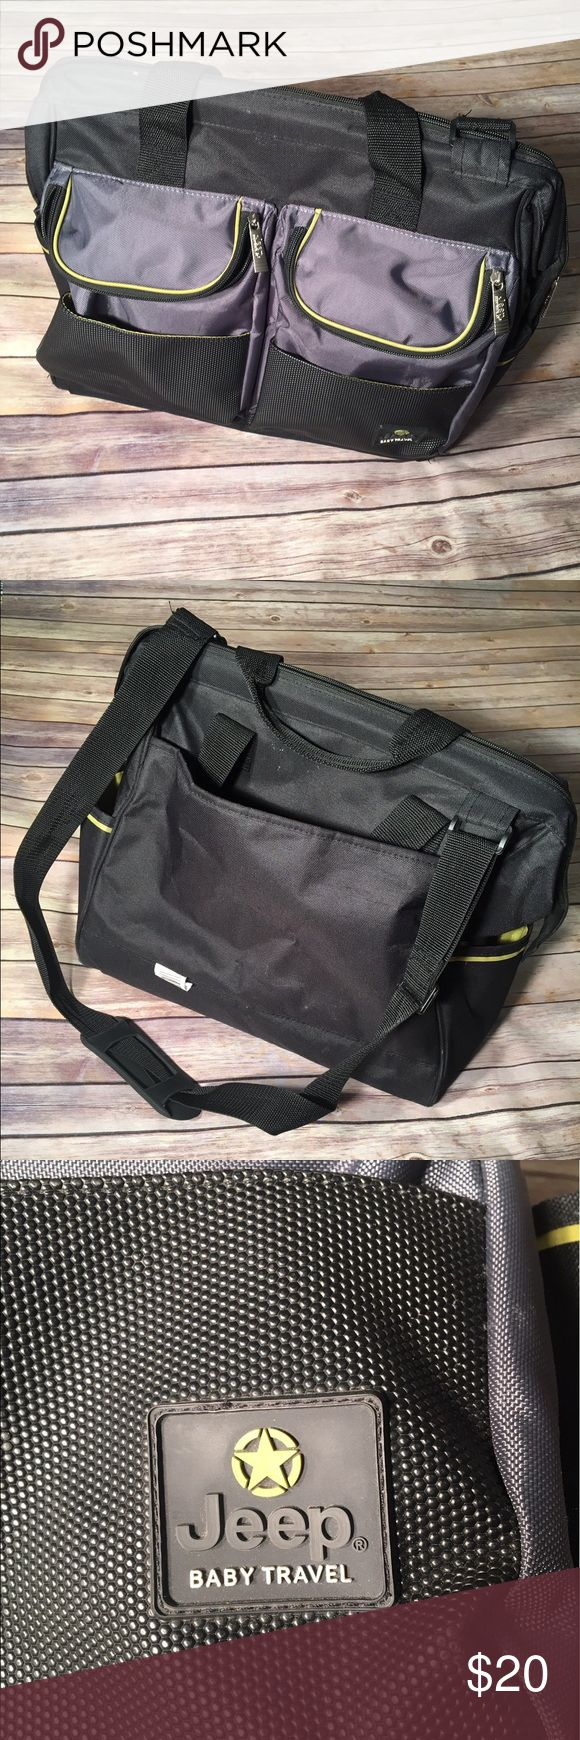 """Jeep Sport Black And Lime Pocket Duffle Diaper Bag Jeep sports pockets duffle diaper bag zip opens to a spacious and multi pocket main compartment. The bag features the Jeep smart organizer system including exterior wipes case dispenser, insulated zip close bottle pocket, and pockets and storage for all of mom's and baby's needs.  Product Details: Made of 100% Polyester Measures approx 17"""" by 10"""" by 5"""" Large spacious main storage compartment Perfect pockets organizer system Made in China…"""